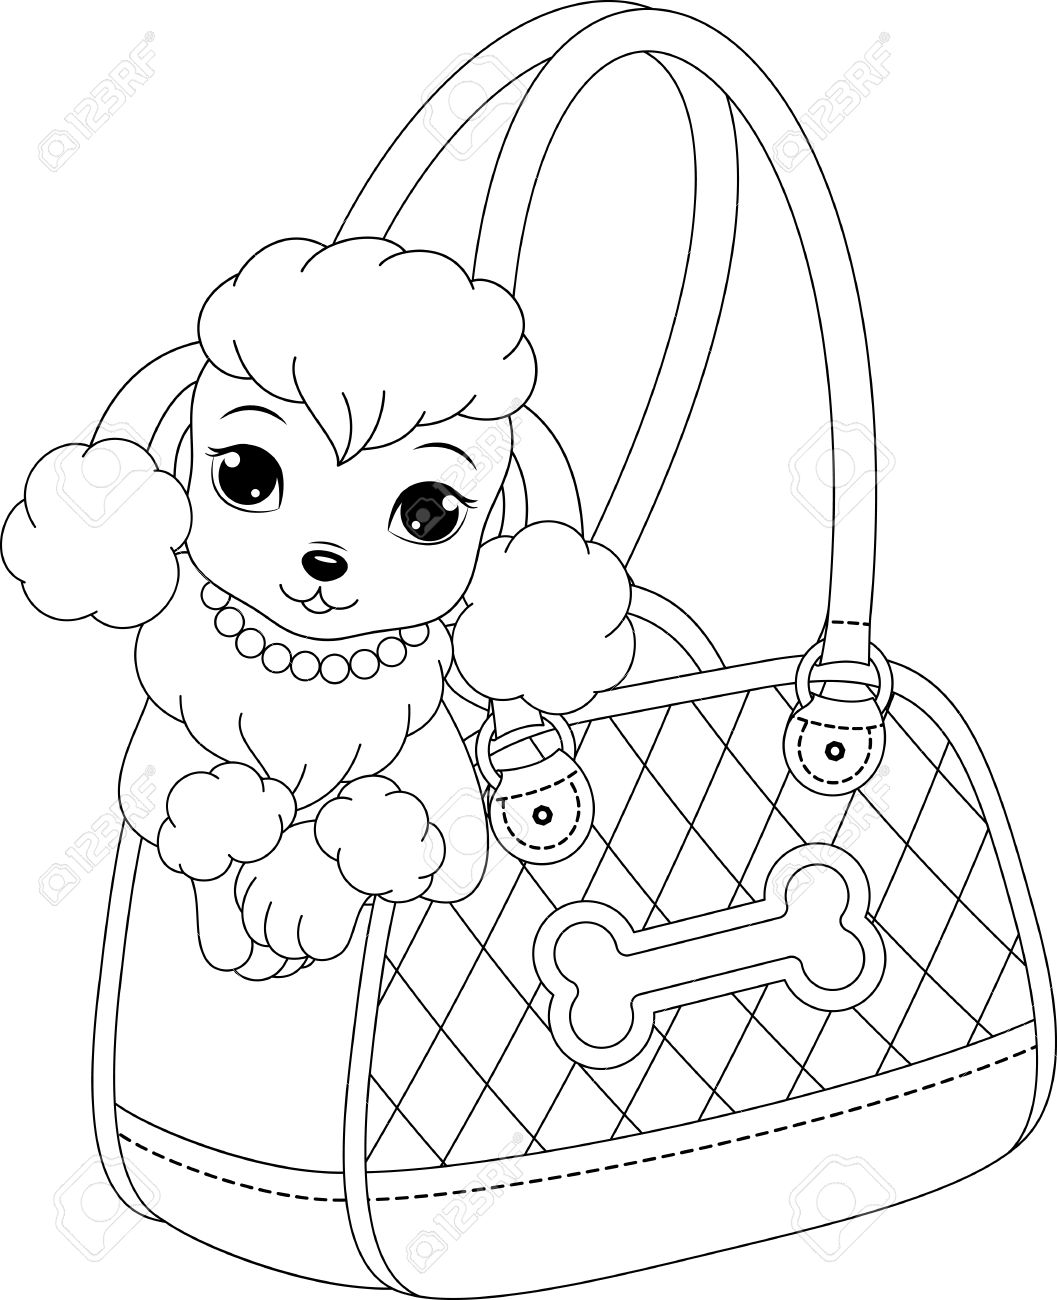 1057x1300 Free Printable Poodle Coloring Pages Free Printable Doodle